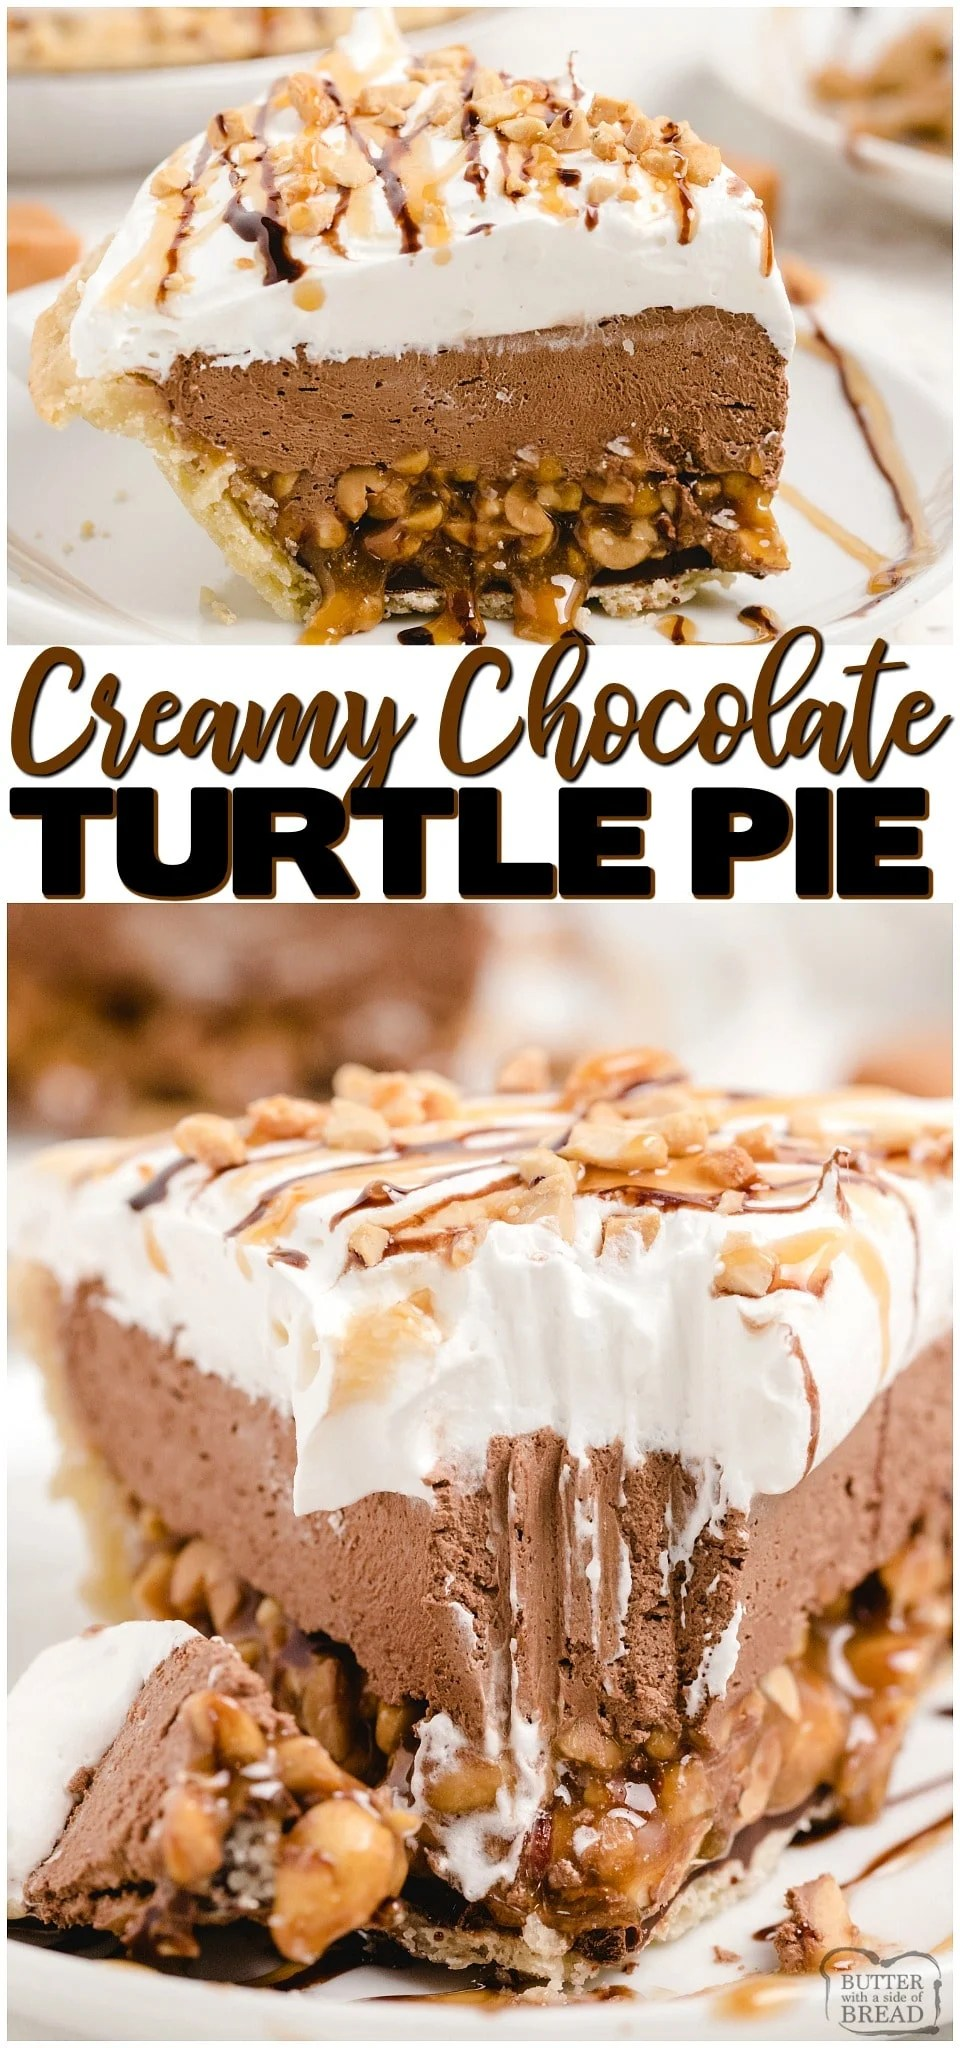 Chocolate Caramel Turtle Pie made with creamy chocolate, salted peanuts and smooth caramel for a delicious 3 layered pie that everyone raves about! #pie #chocolate #creampie #caramel #turtle #peanuts #nobake #easyrecipe #dessert from BUTTER WITH A SIDE OF BREAD